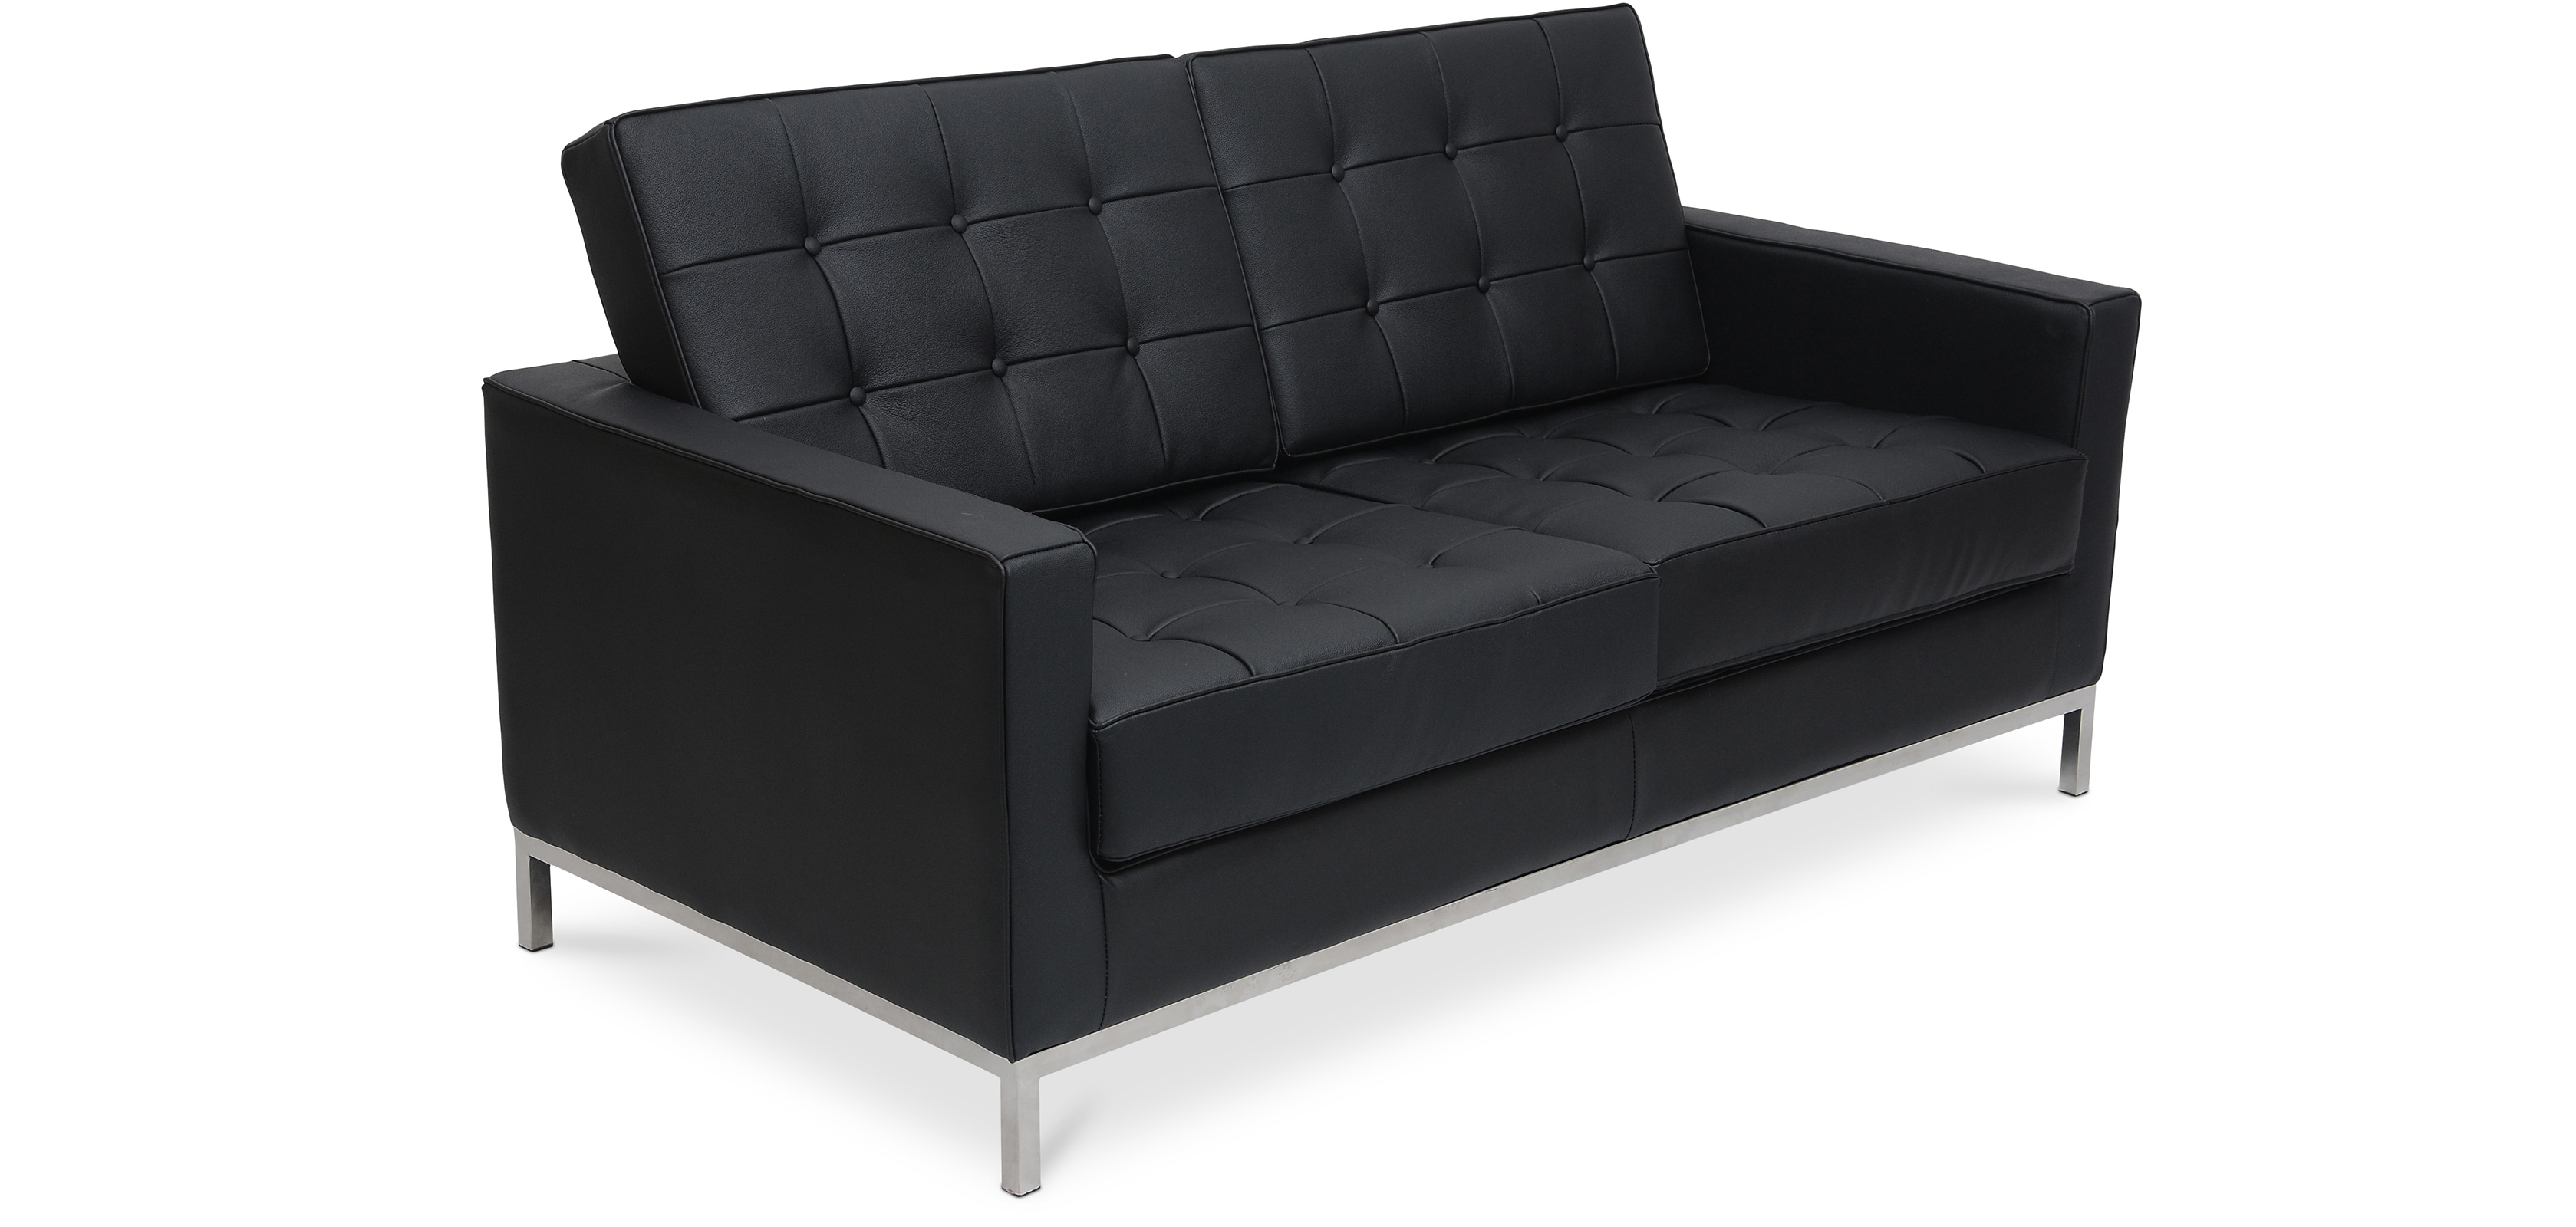 design sofa florence knoll zweisitzer hochwertiges leder. Black Bedroom Furniture Sets. Home Design Ideas